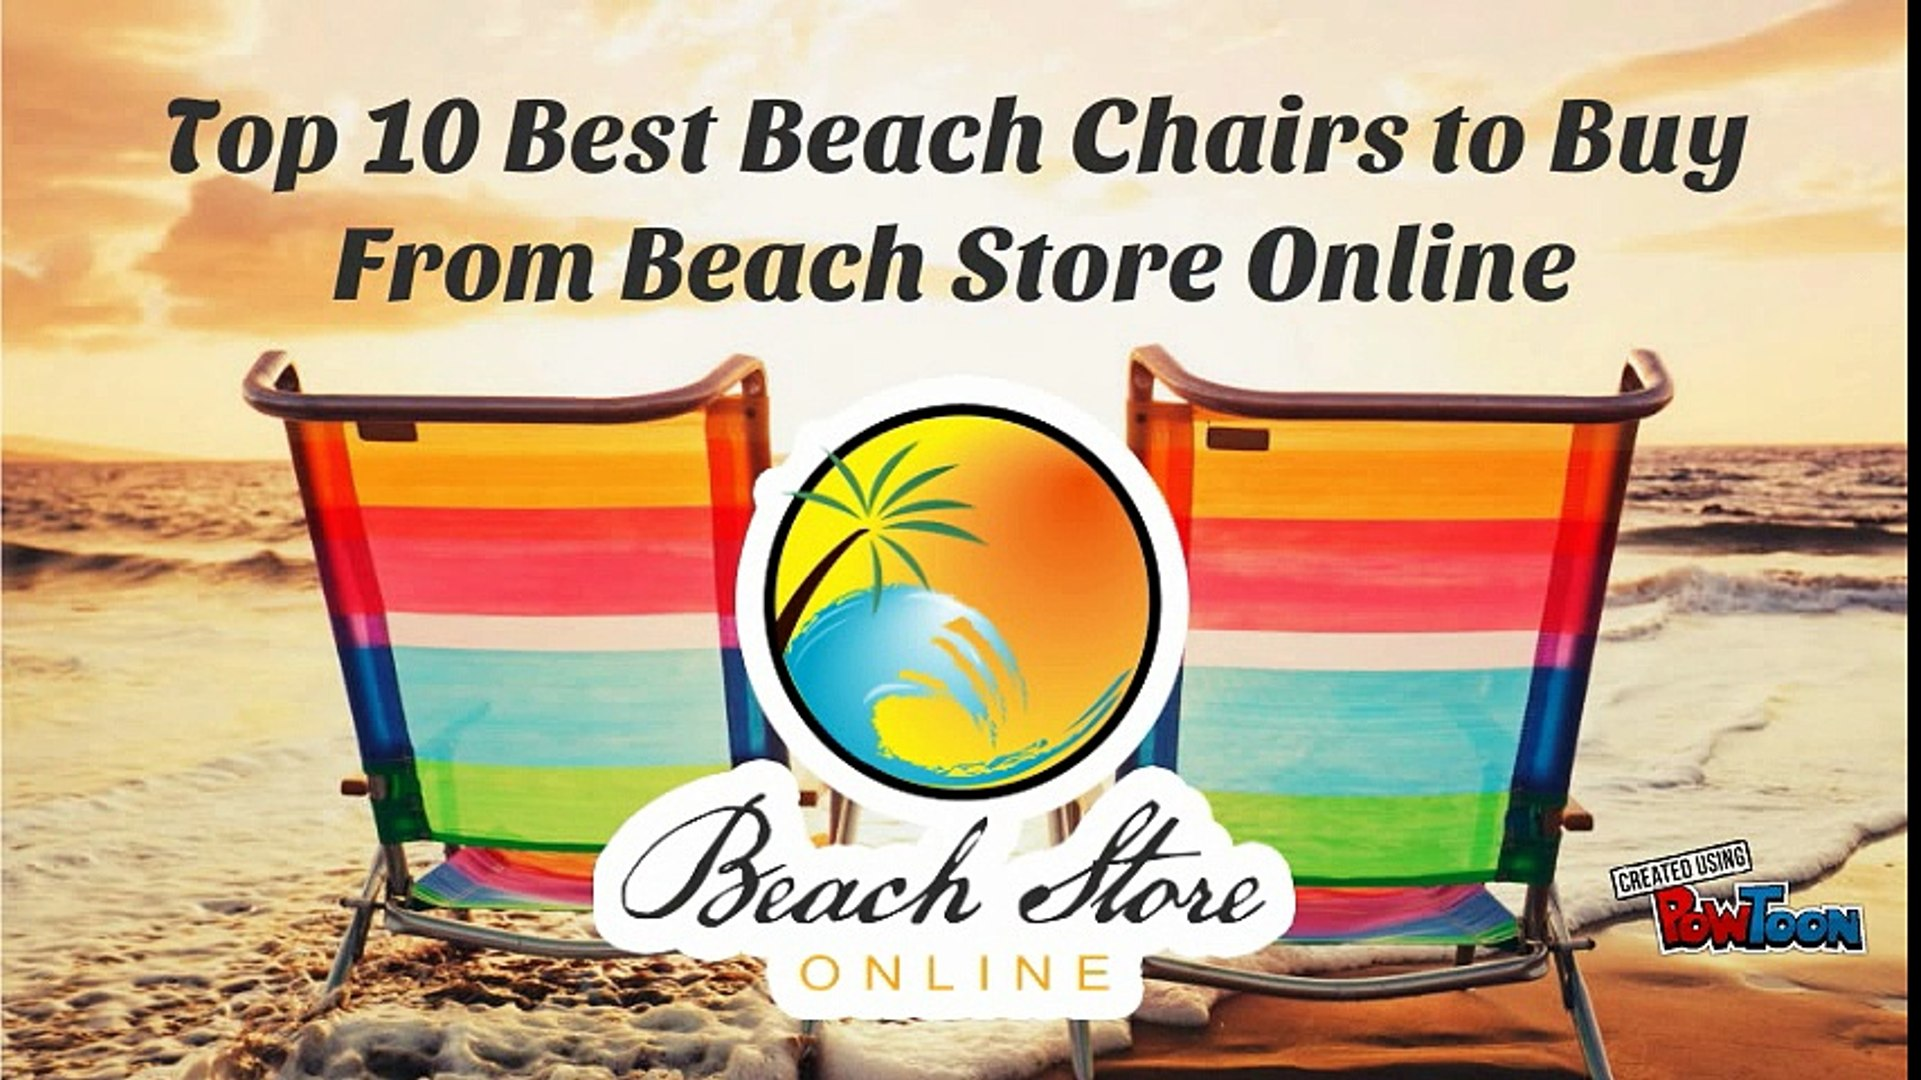 Top 10 Best Beach Chairs To Buy From Beach Store Online Video Dailymotion